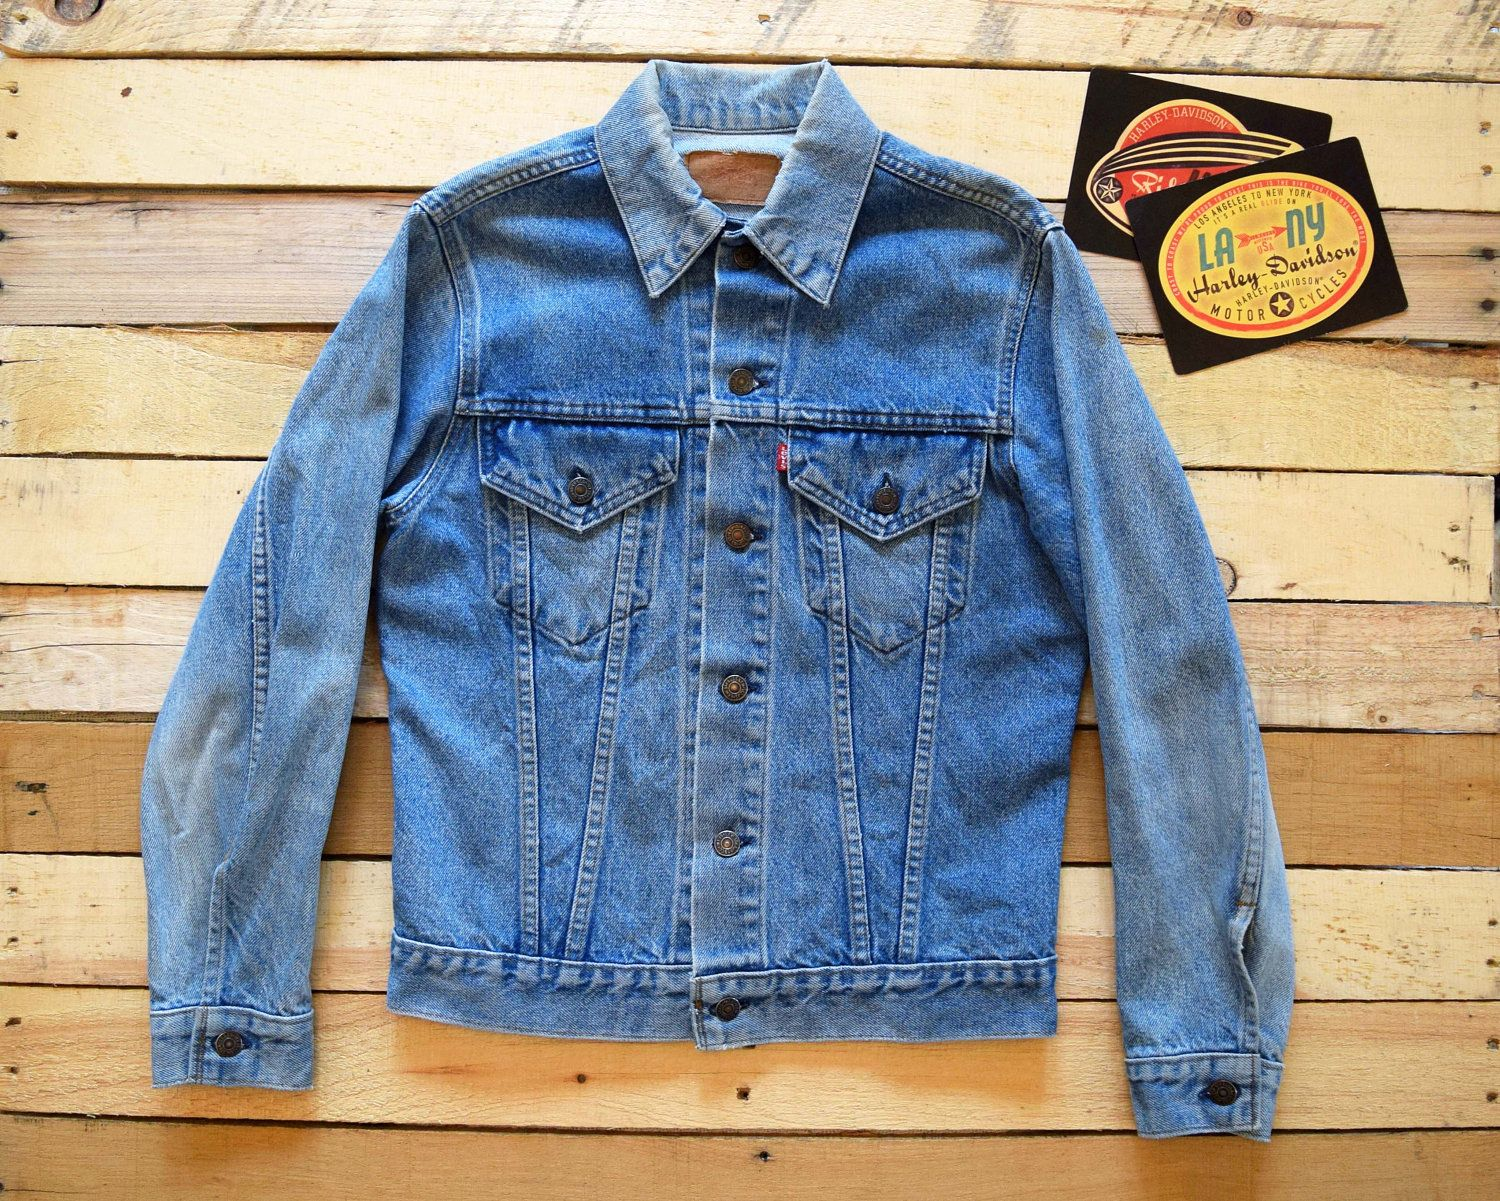 The Classic Type Iii Levis Trucker Jacket From The 70s Mid 80s In A Light Blue Stonewashed Denim This Jacket Has A Small E Red Denim Stone Wash Trucker Jacket